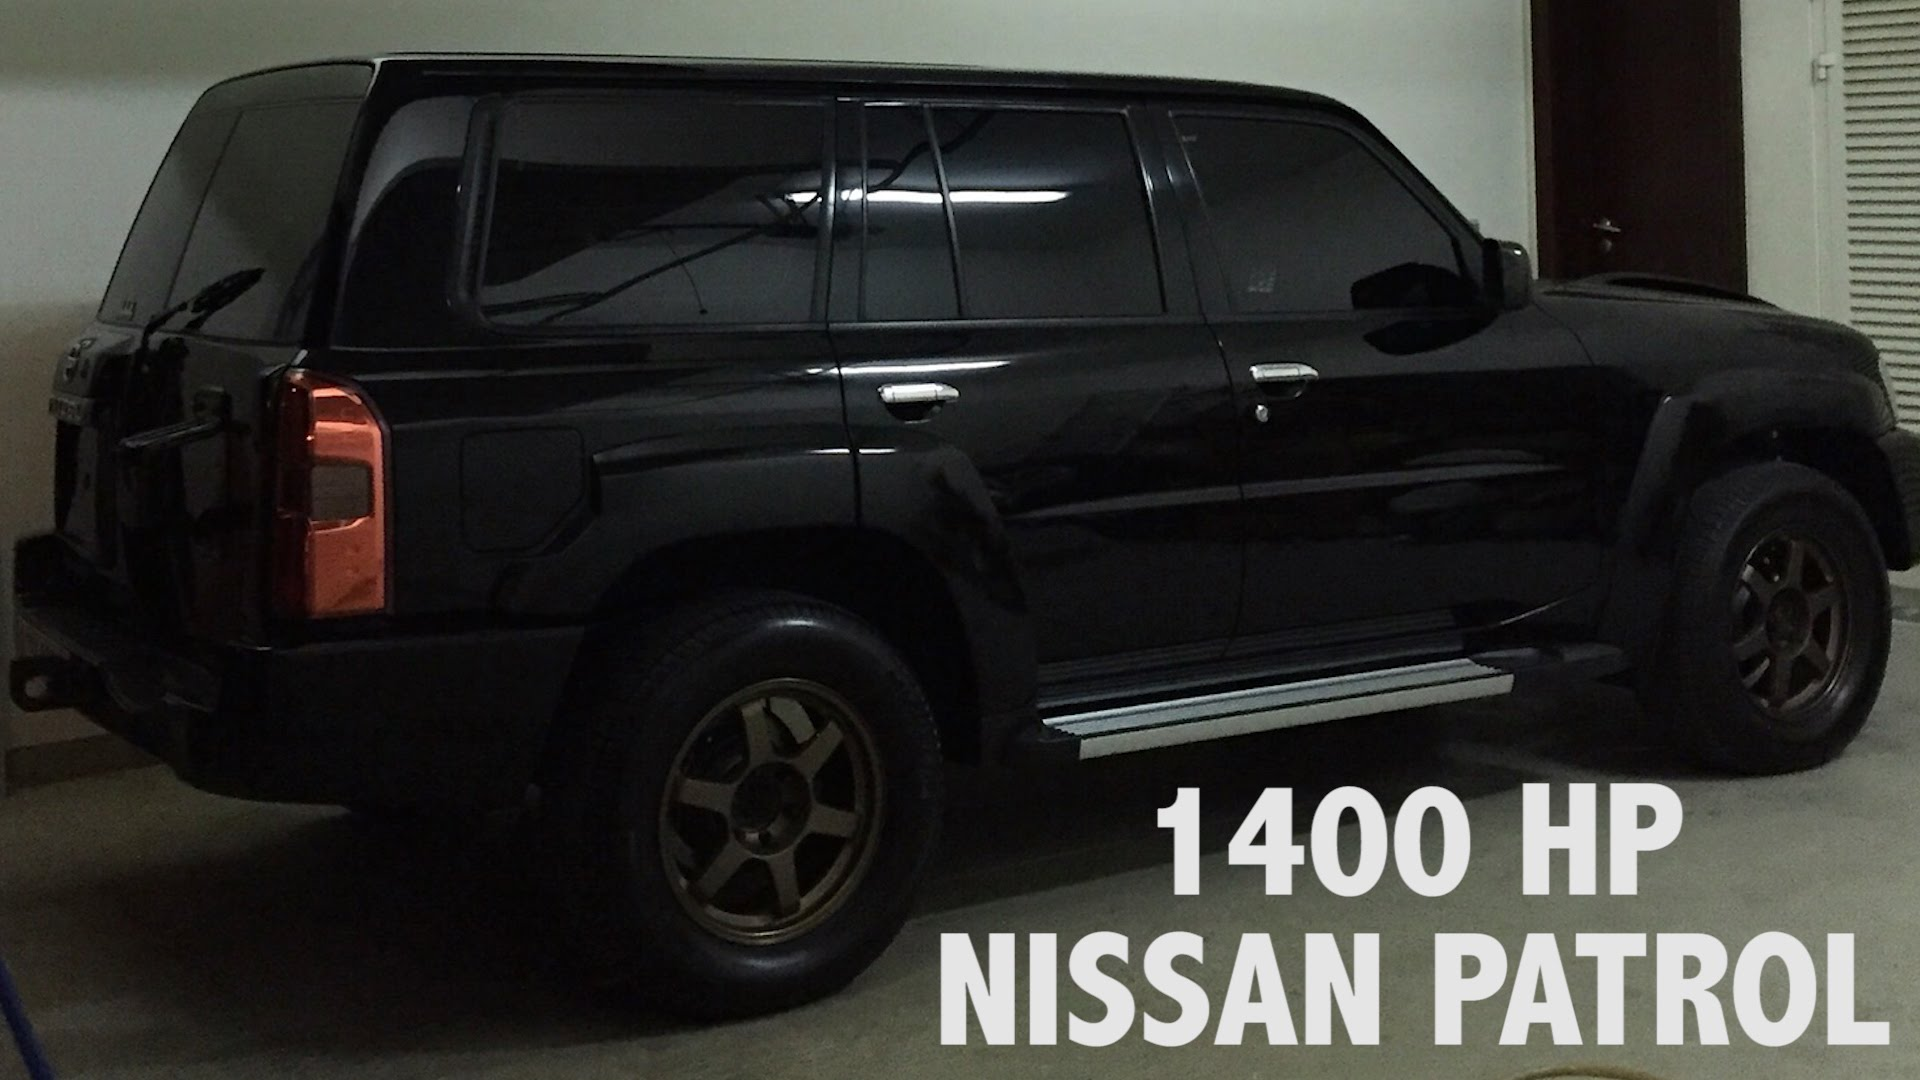 1400 Horsepower Nissan Patrol in Dubai! - YouTube